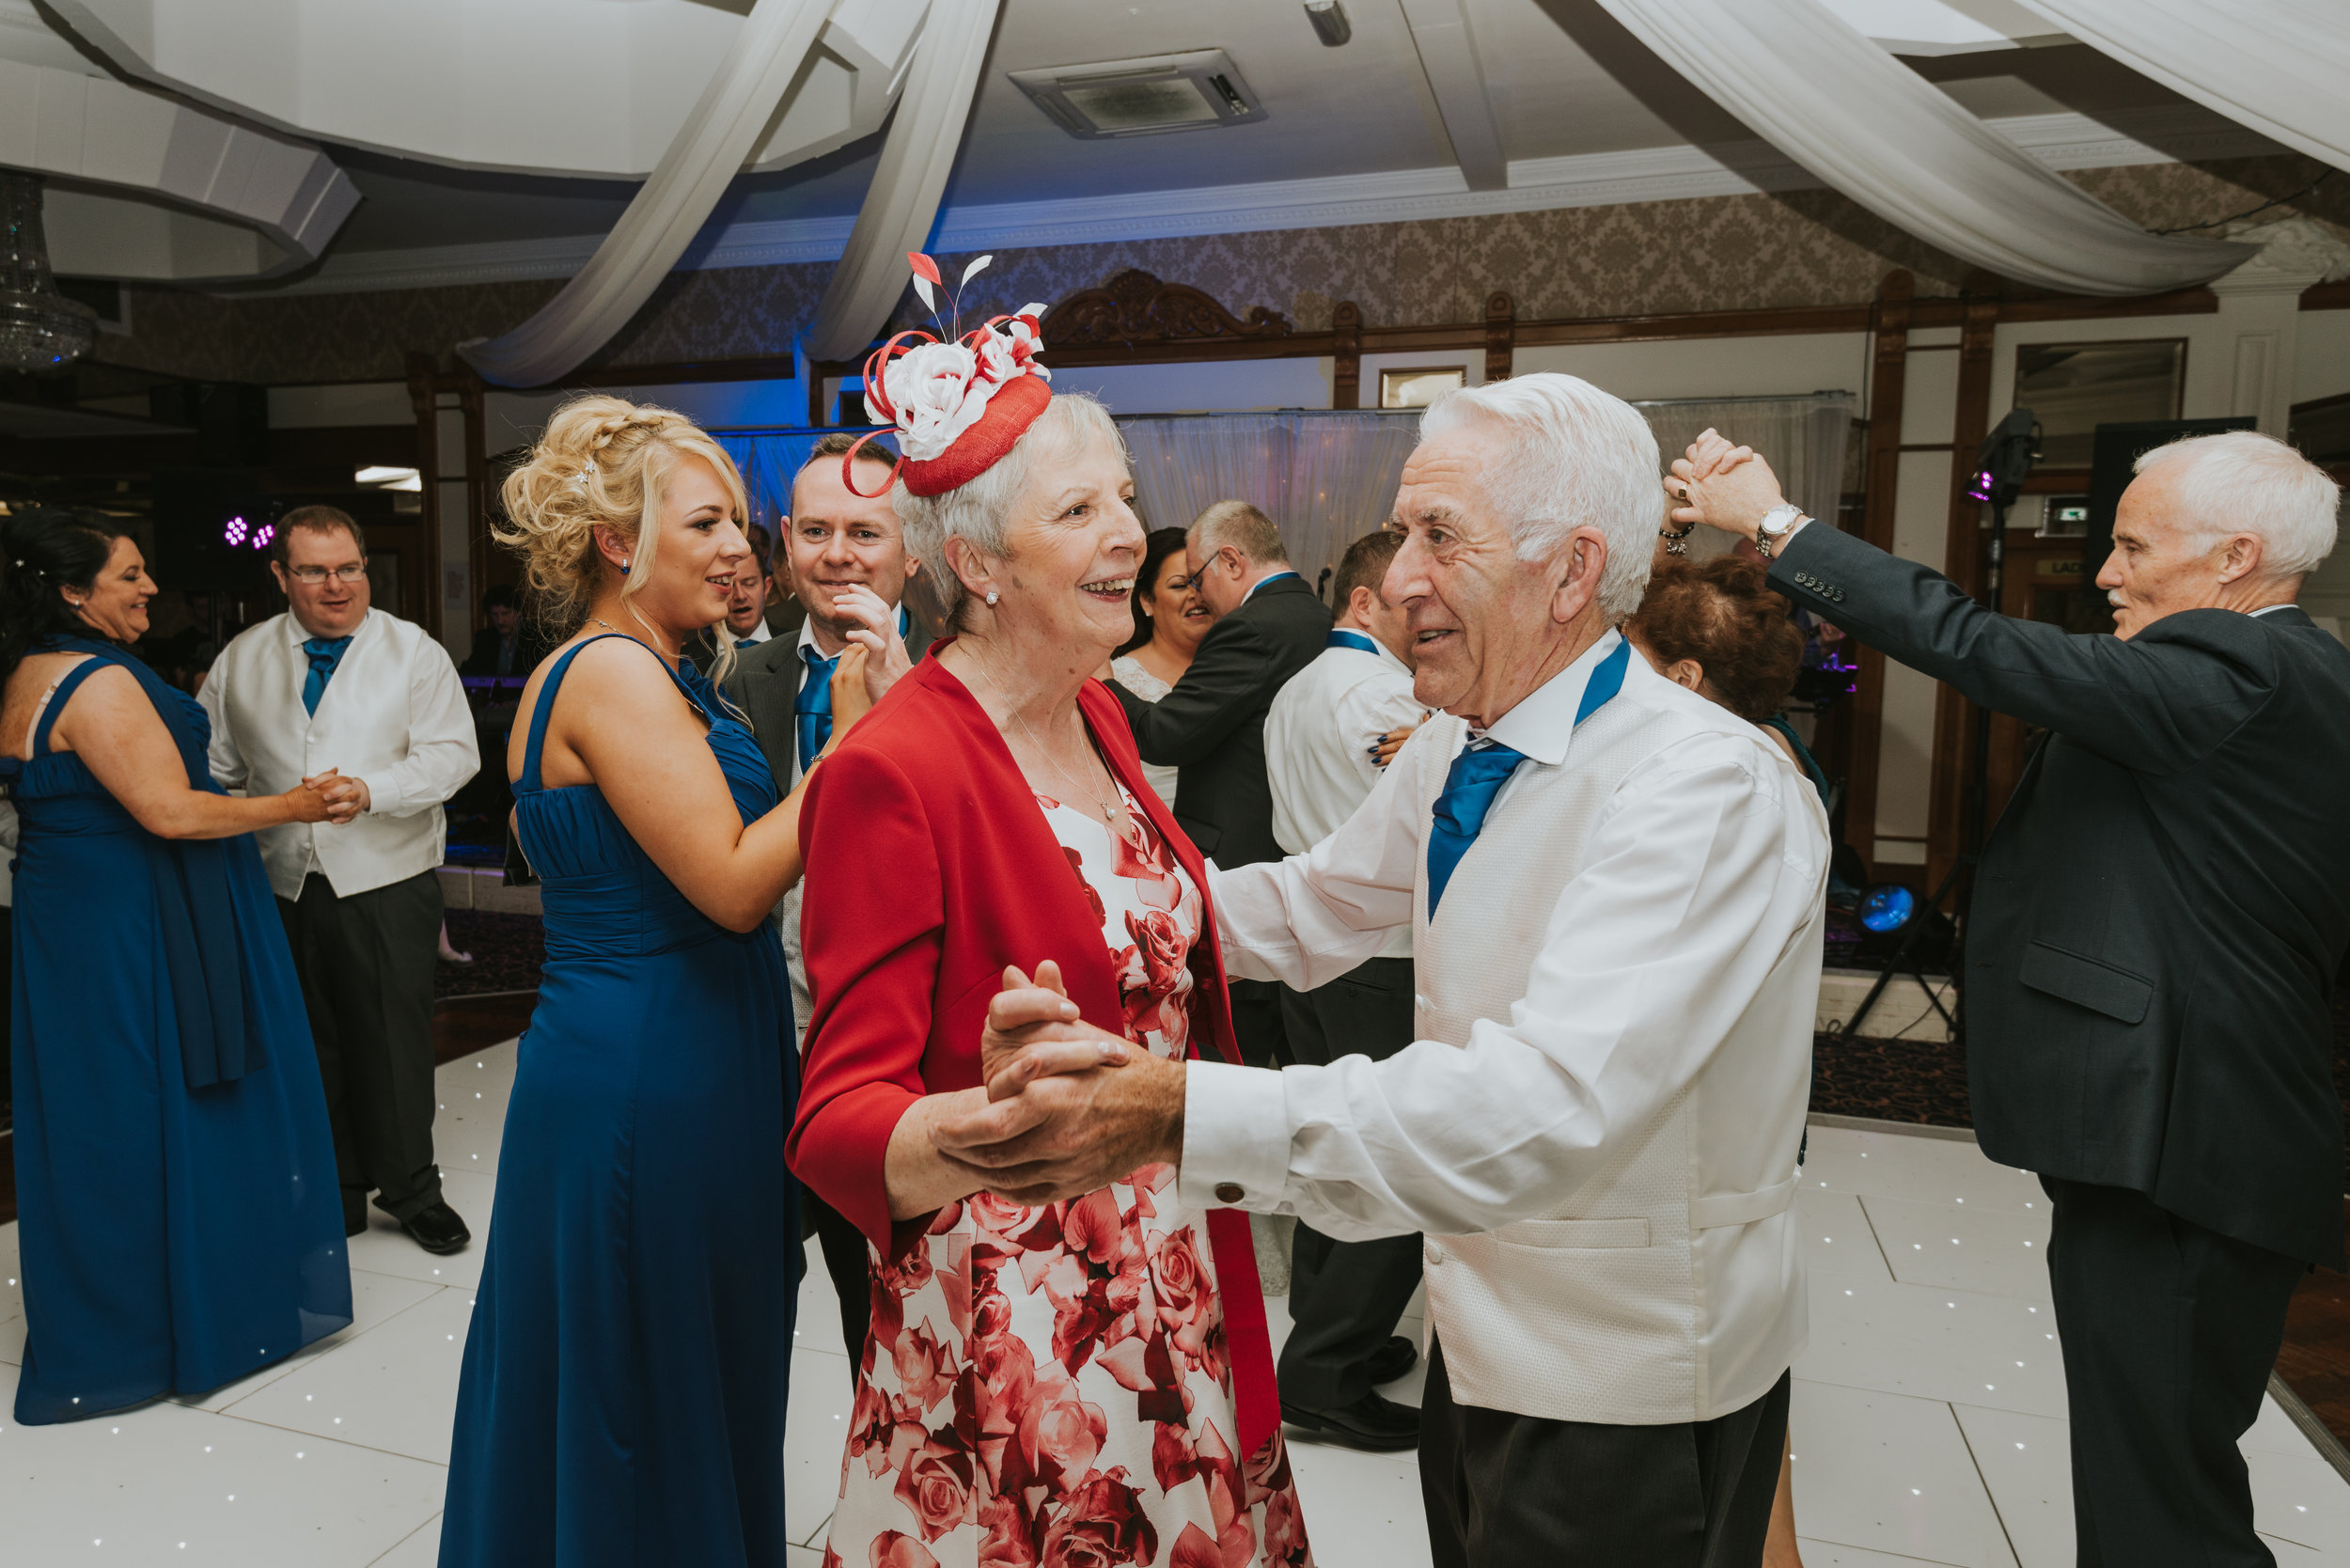 Balmoral Hotel Belfast wedding photographer Pure Photo N.I mother of the bride dancing